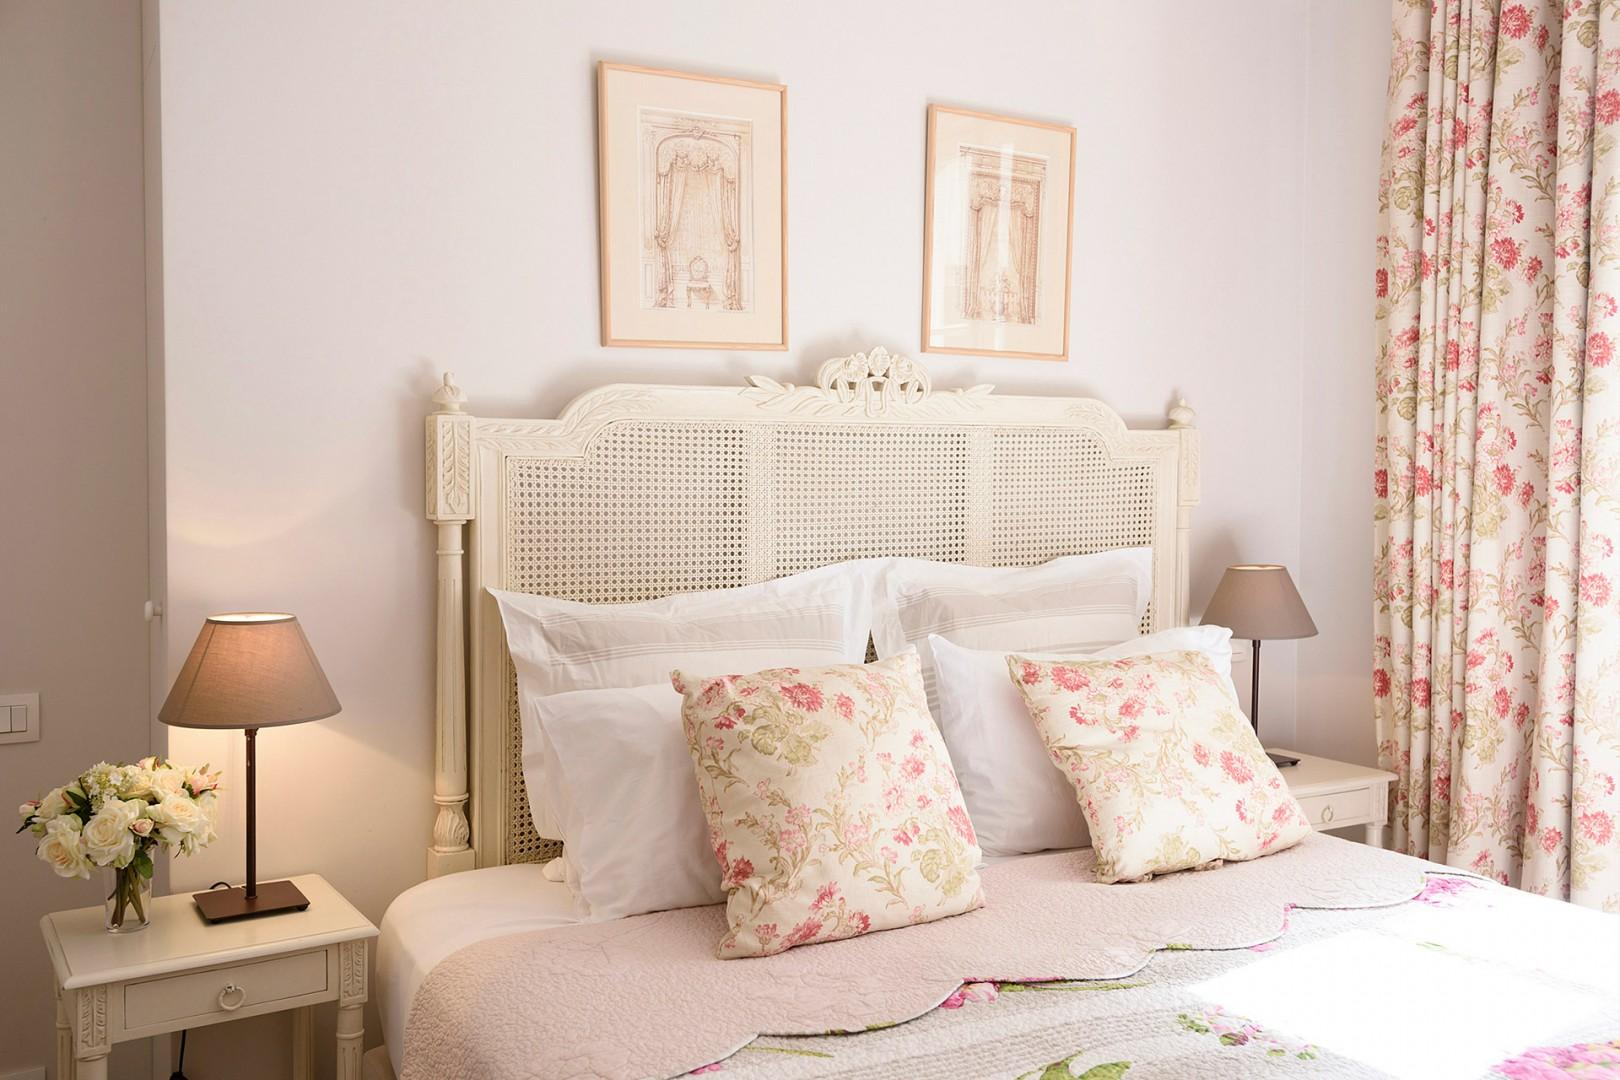 You will love the luxurious bedding and lovely décor.